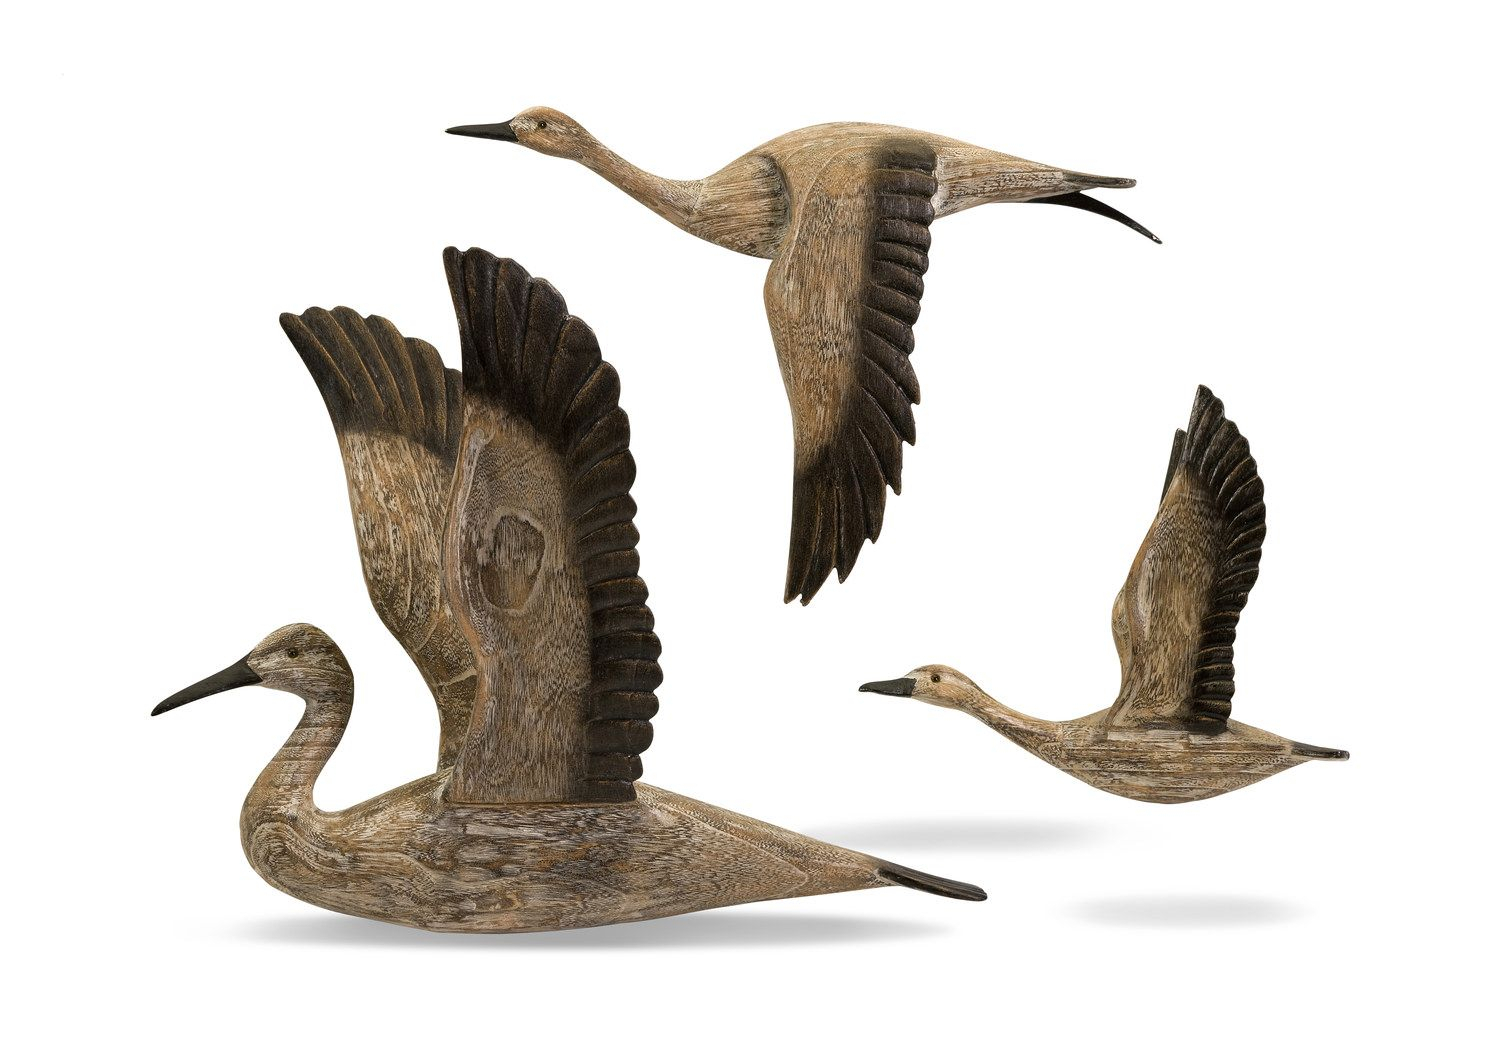 Reeds Migration Wall Decor Set Of 3 | Fall Favorites | Bird Pertaining To Reeds Migration Wall Decor Sets (set Of 3) (View 2 of 30)